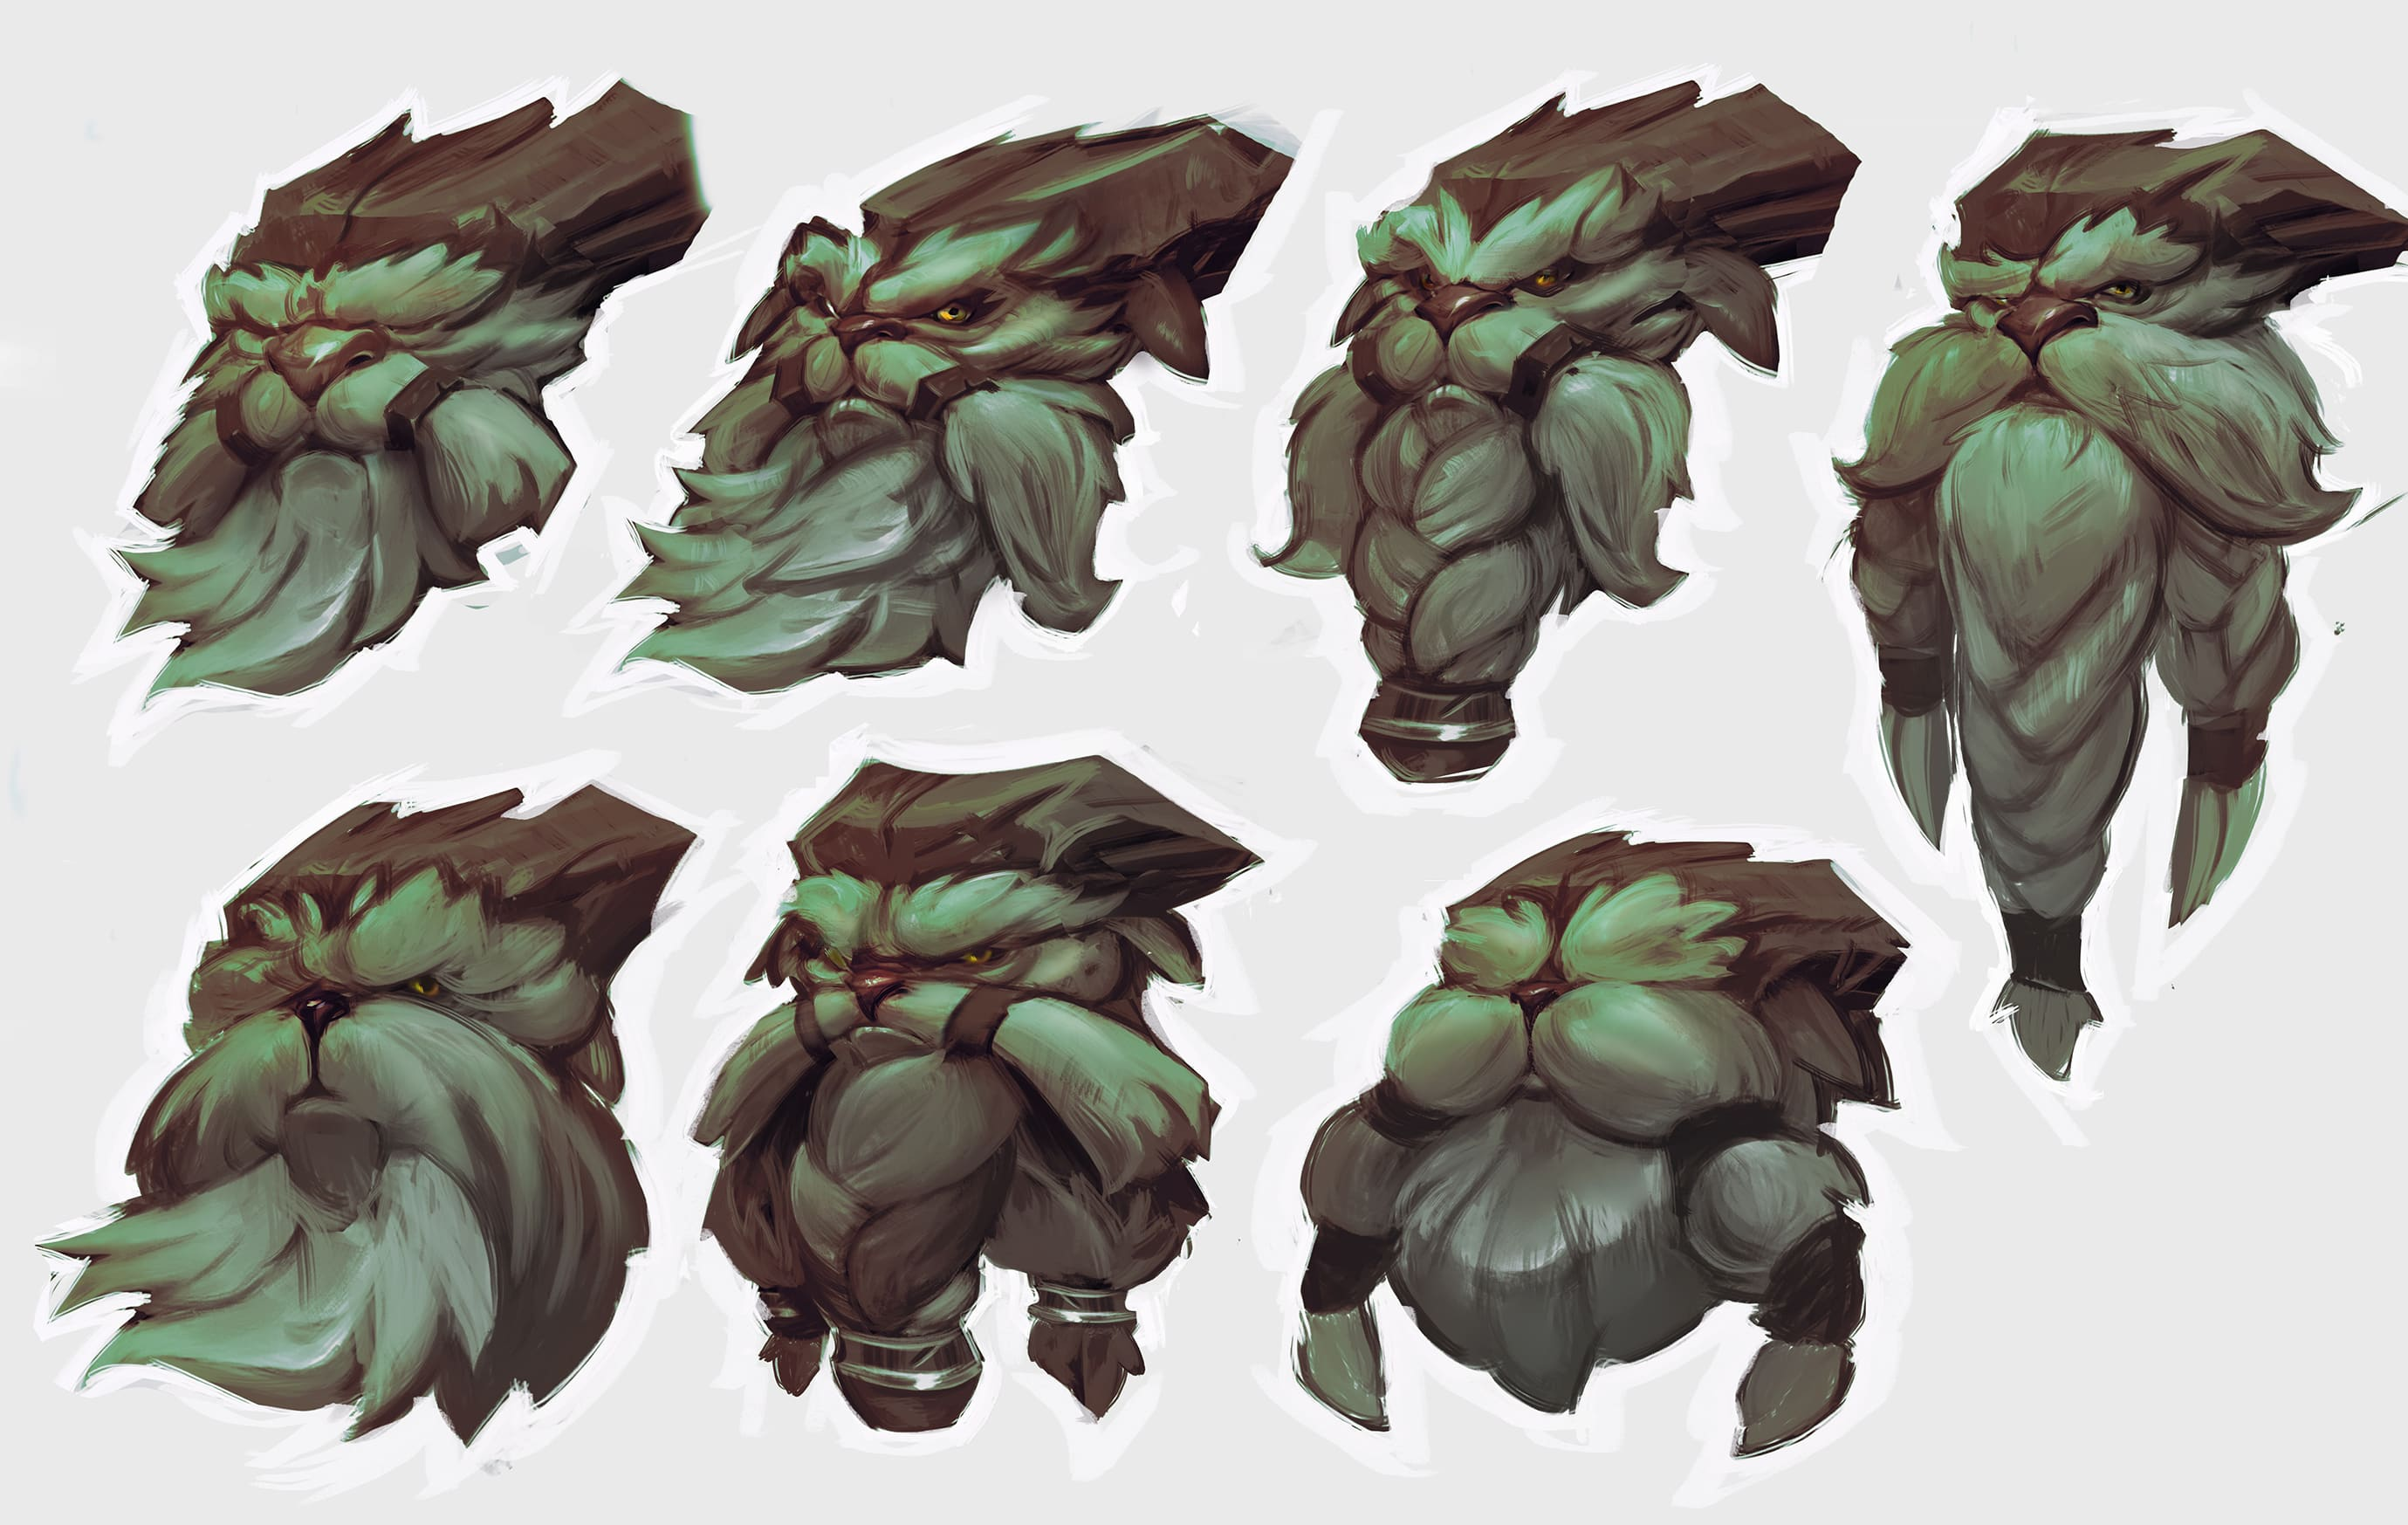 Ornn may be rough around the edges, but he's not a bad demiguy—his face needed to look gruff without seeming evil.